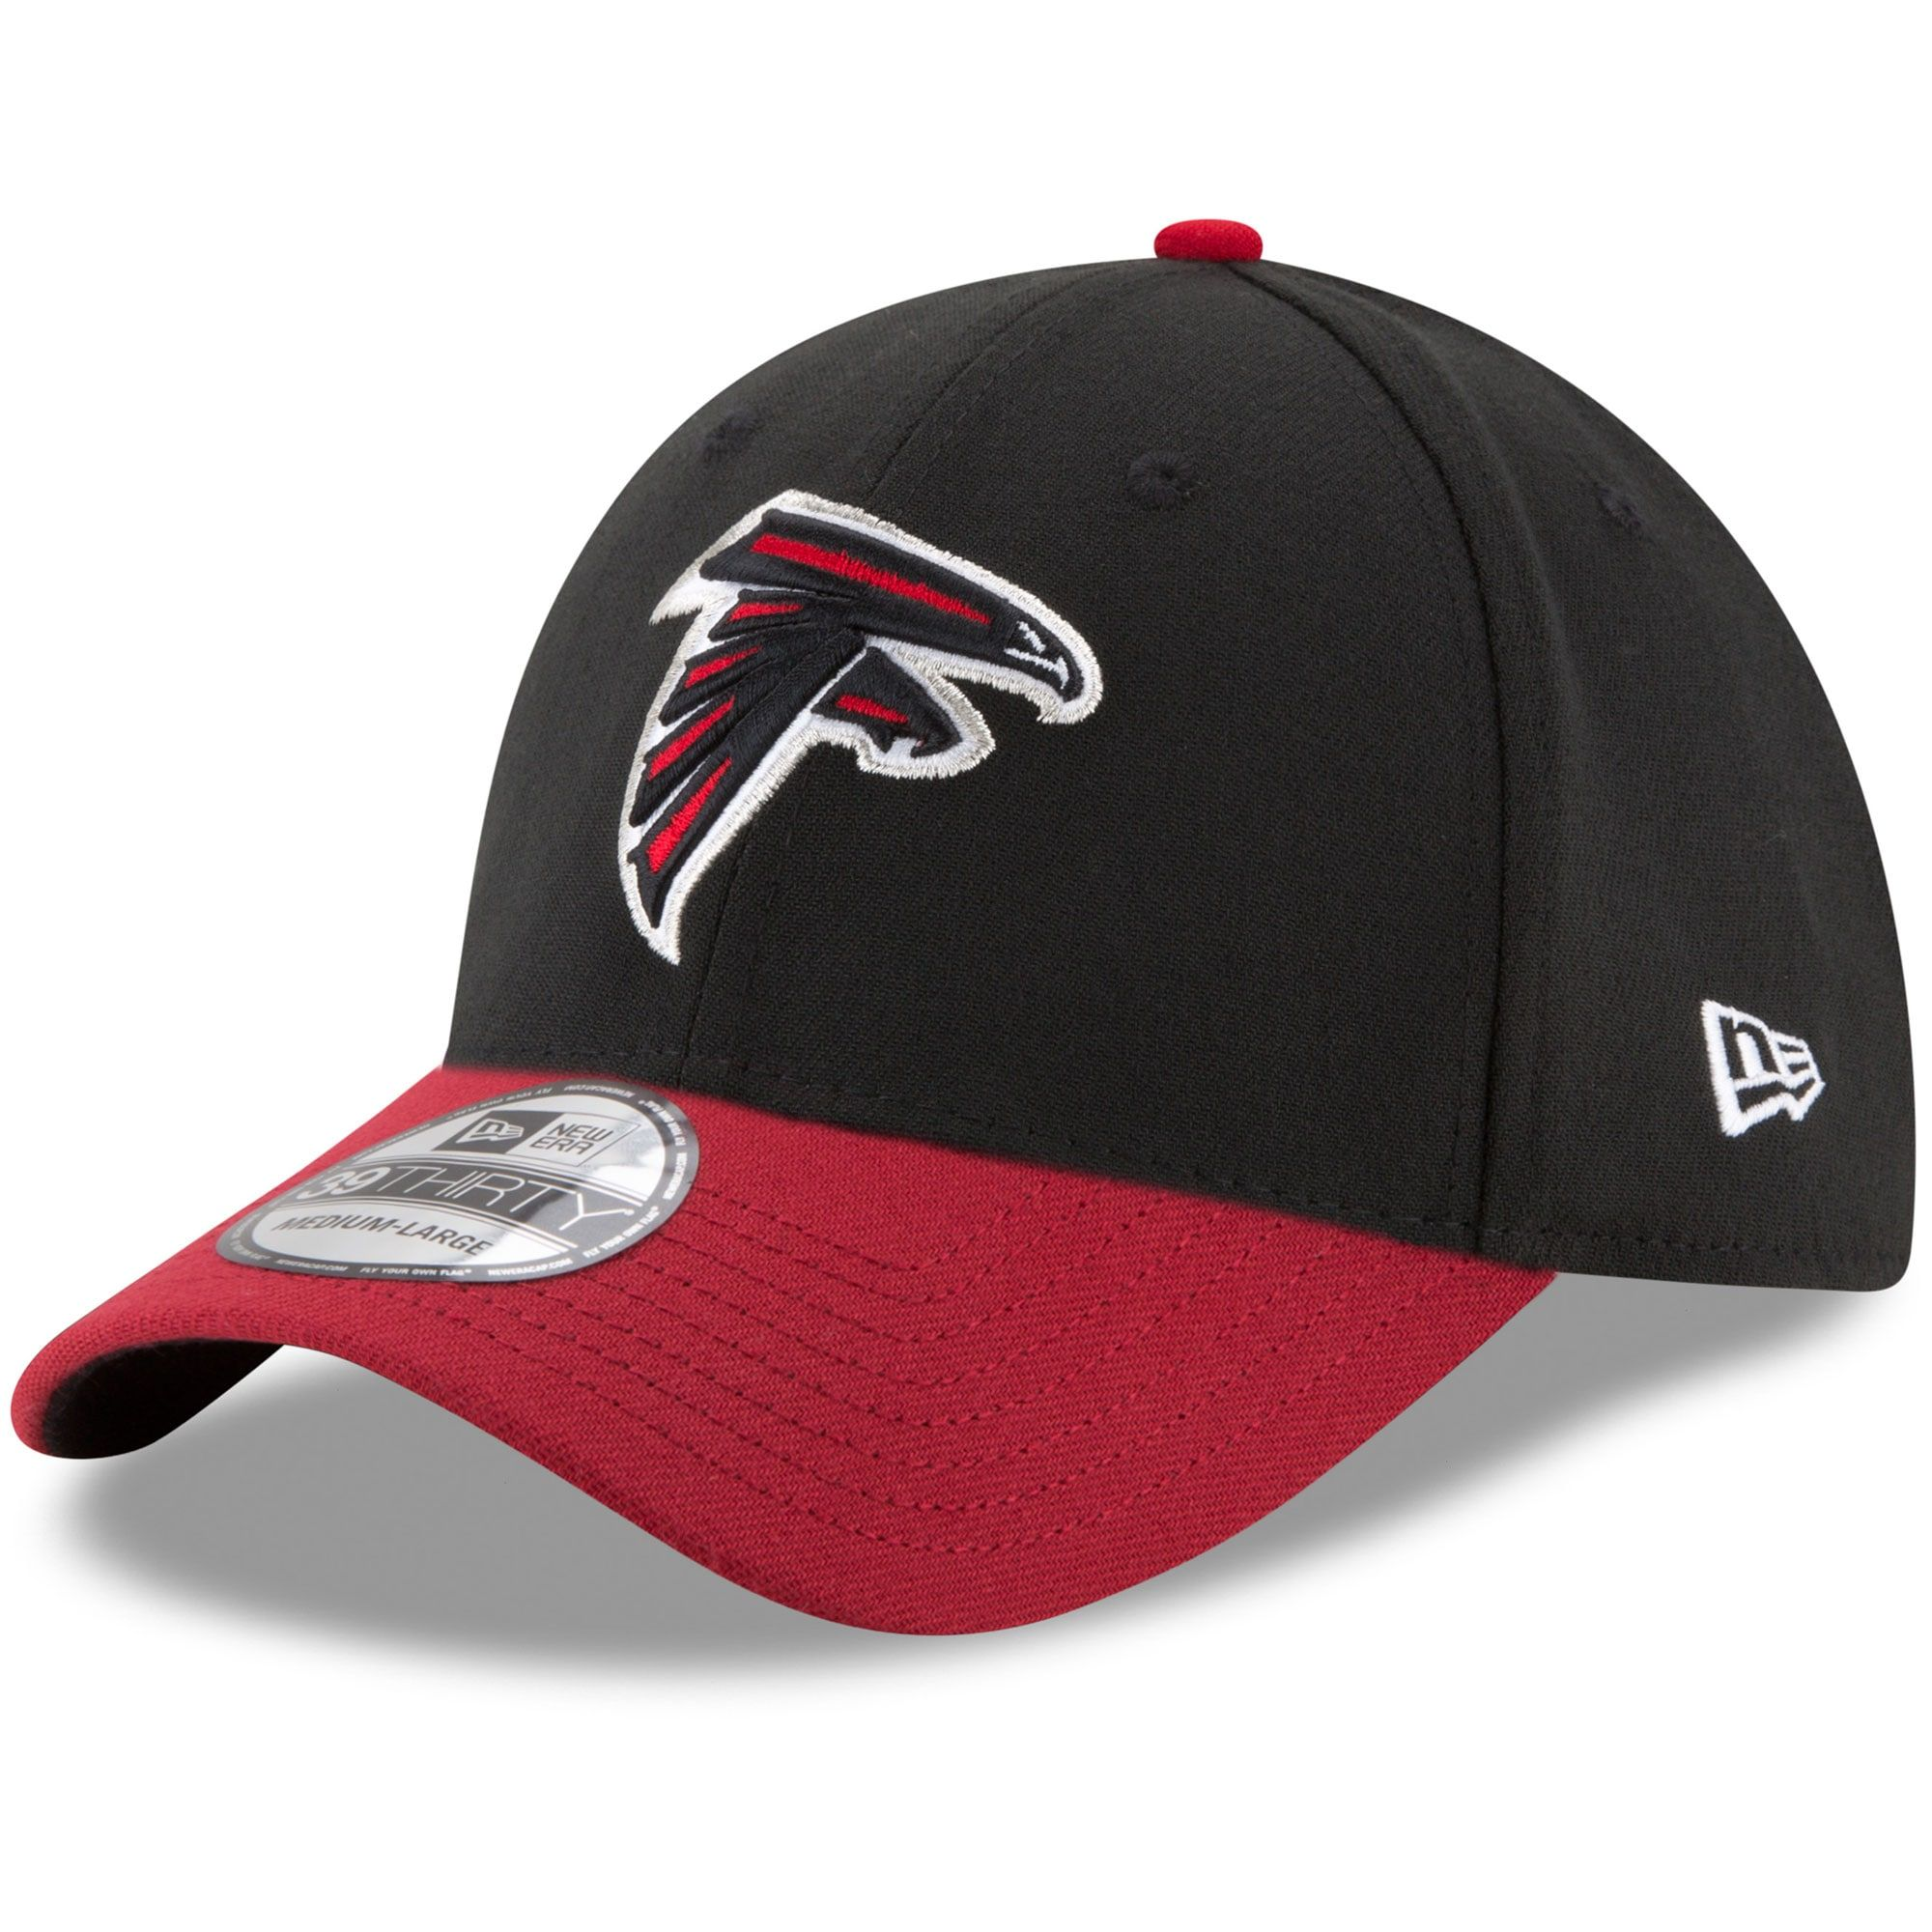 Atlanta Falcons New Era Team Classic Two Tone 39thirty Flex Hat Black Red Gear Up For Sports In 2020 Black And Red New Era Atlanta Falcons